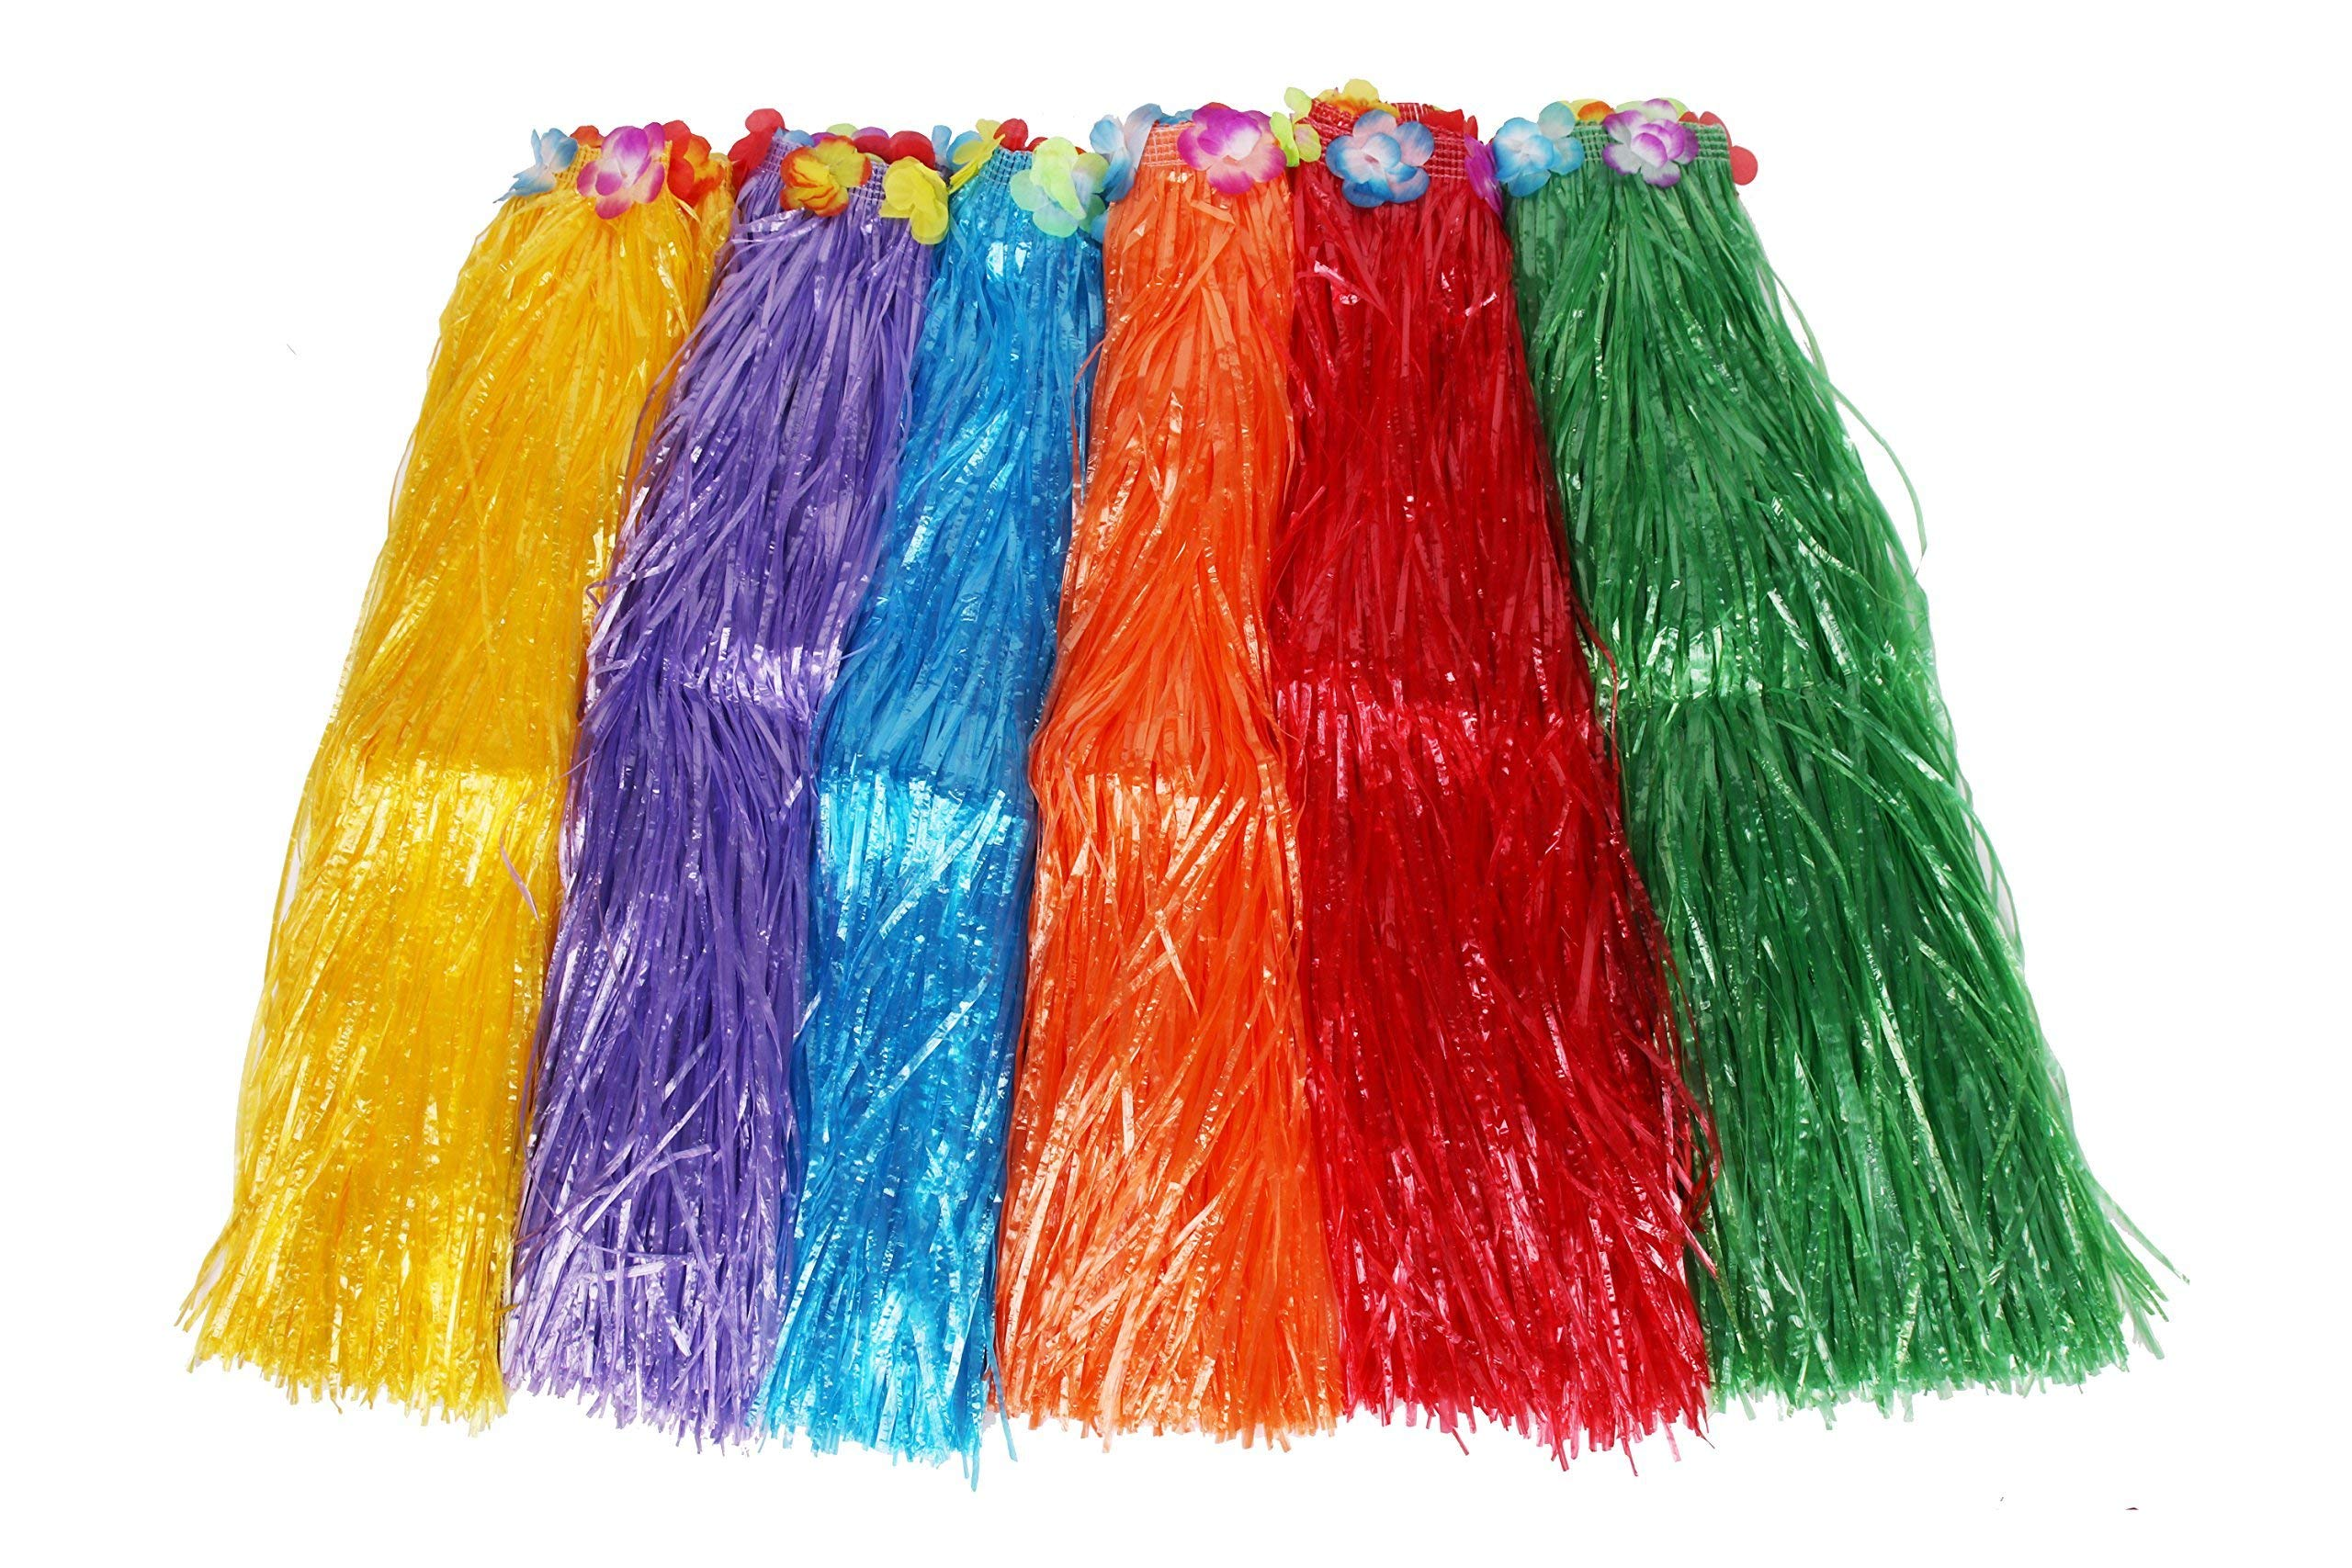 Sea View Treasures Bulk 12 Pack Deluxe Adult 32'' Long Flowered Grass Hula Skirt Assortment